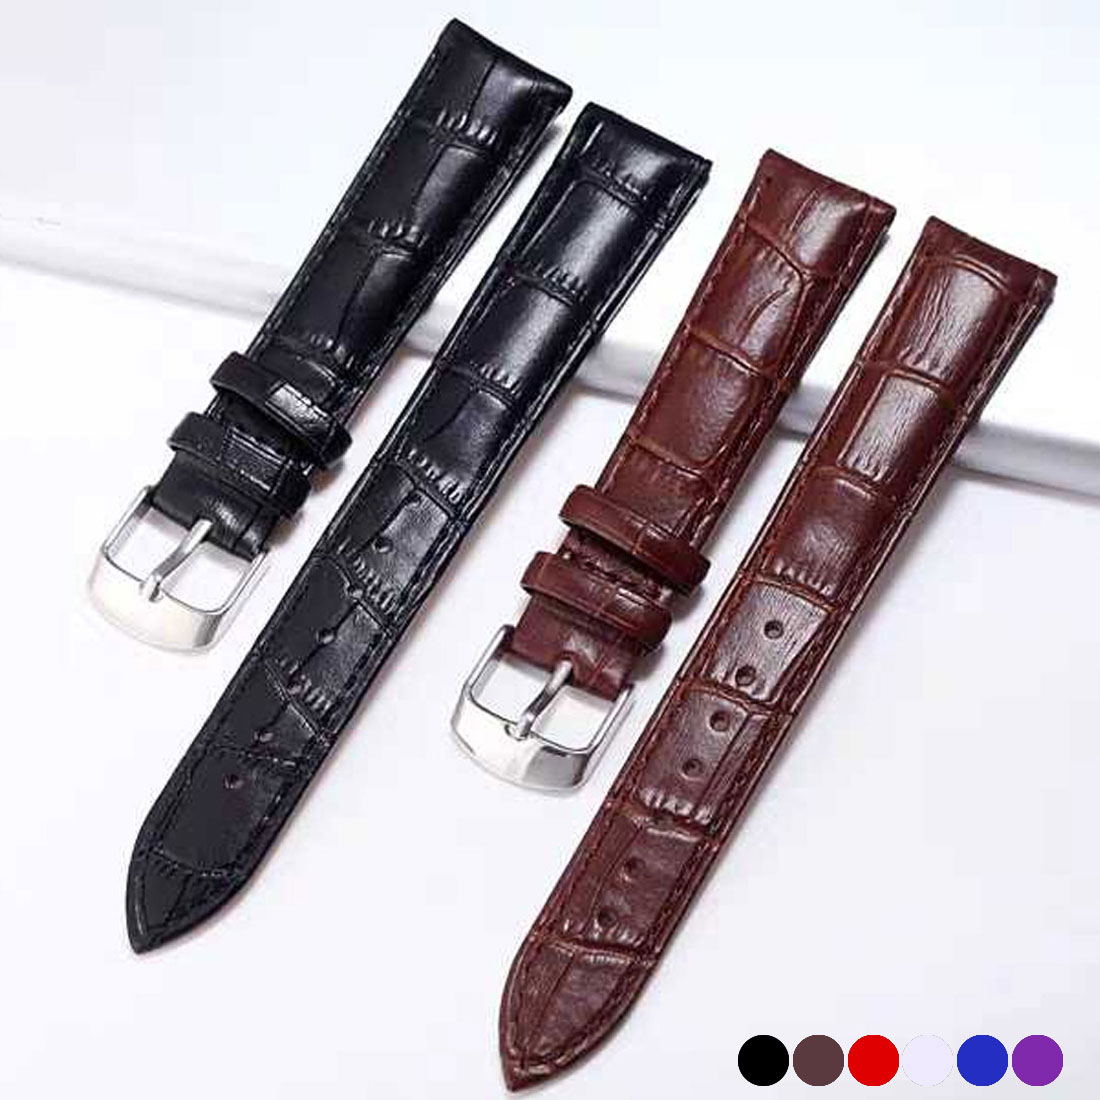 Watch Band Leather straps Watch Bands 16mm watch accessories women Belt band watch accessories wristband